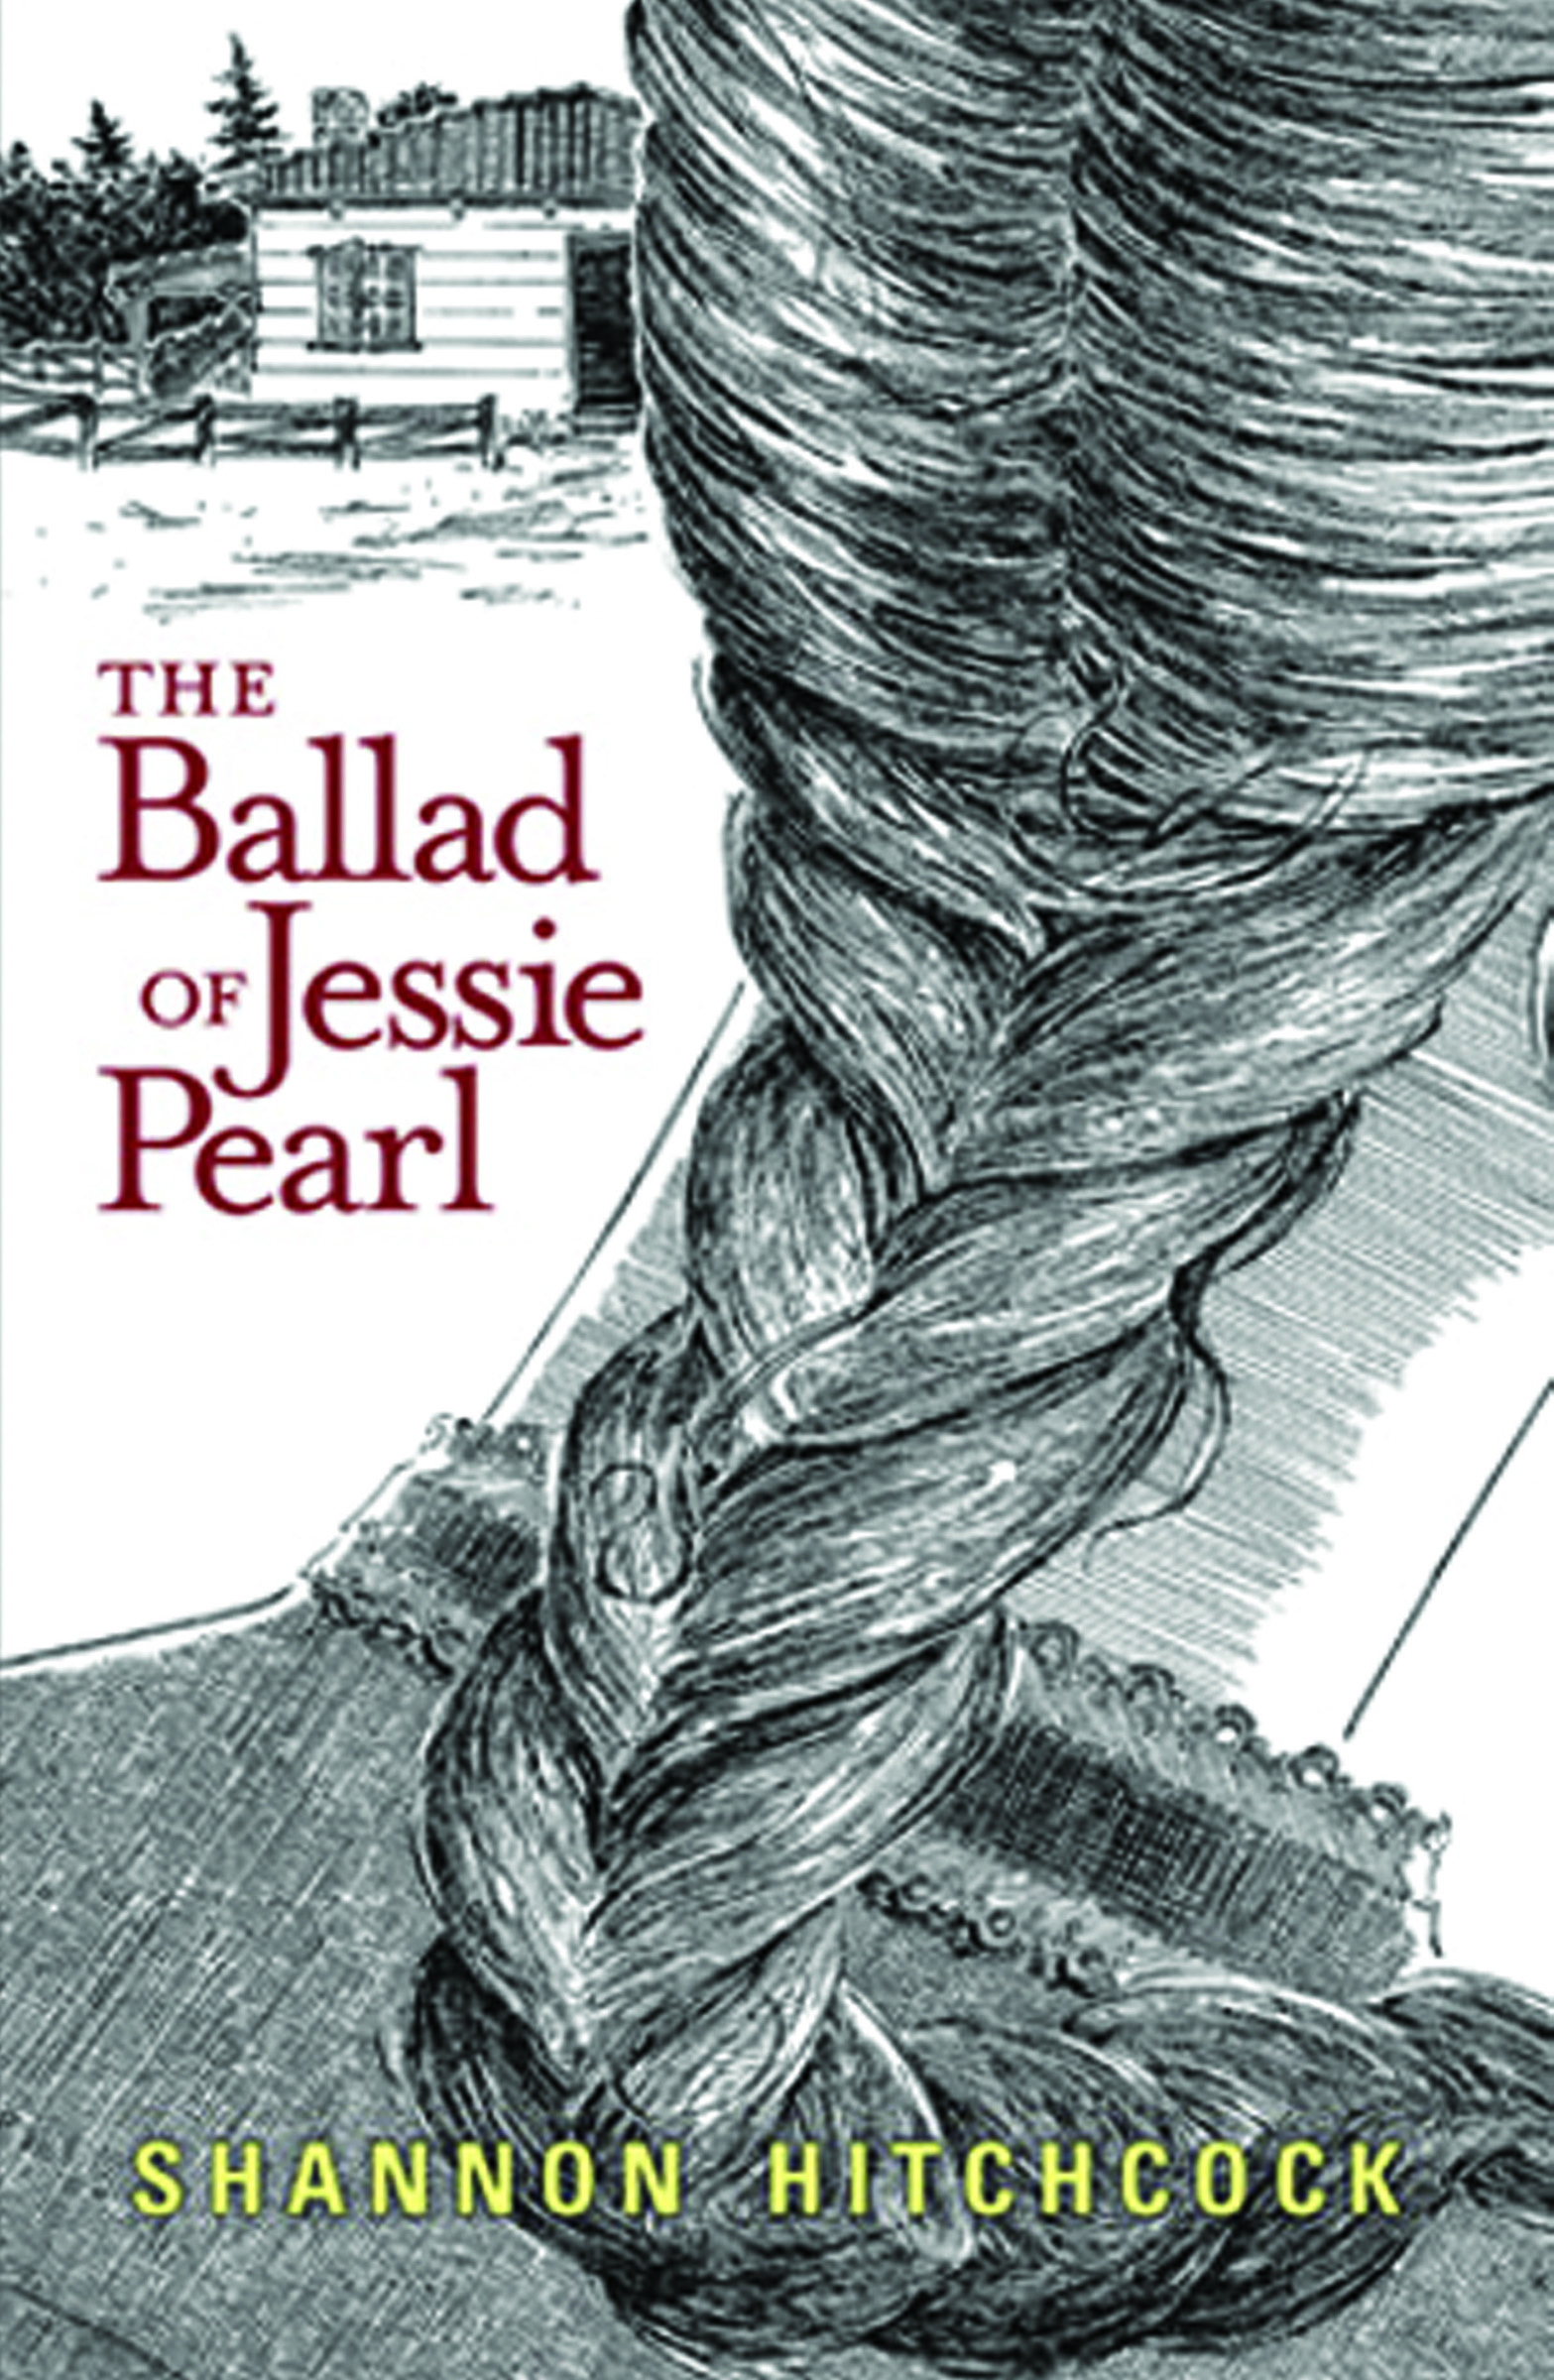 The Ballad of Jesse Pearl by Shannon Hitchcock